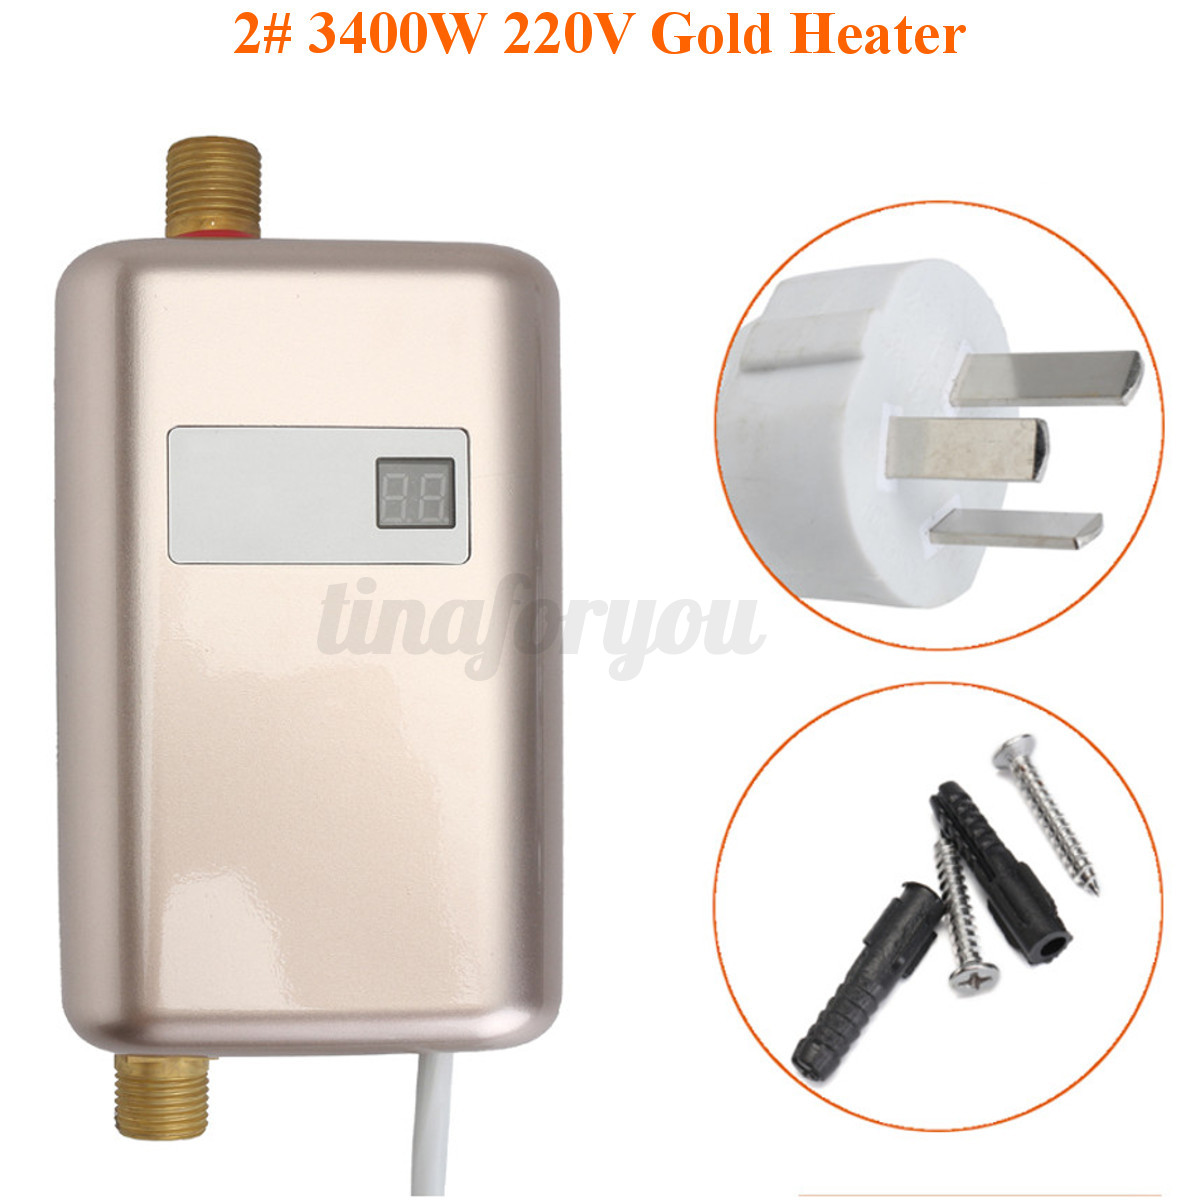 Instant Hot Water Heater Home : V  w electric shower tankless instant hot